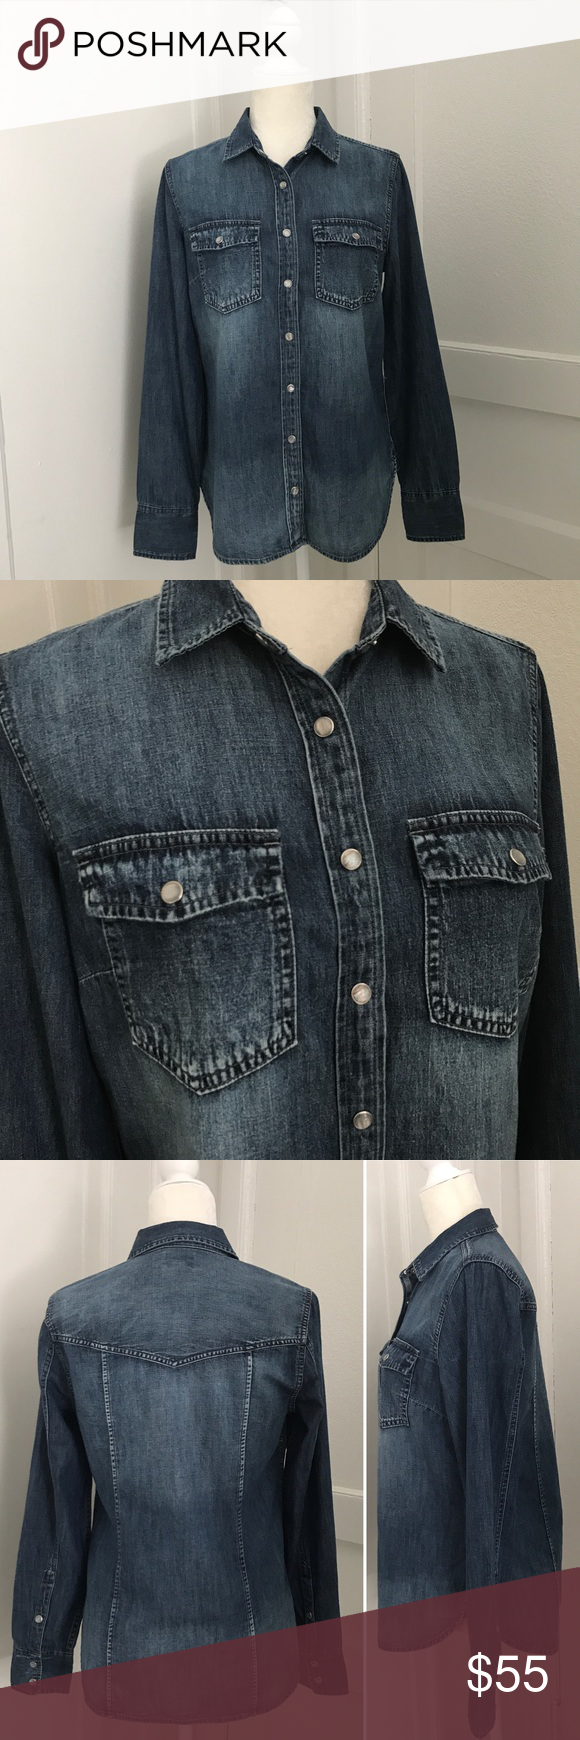 203ff9853b J. Crew Western Chambray Shirt In Vintage Indigo New with tags! Snap ...